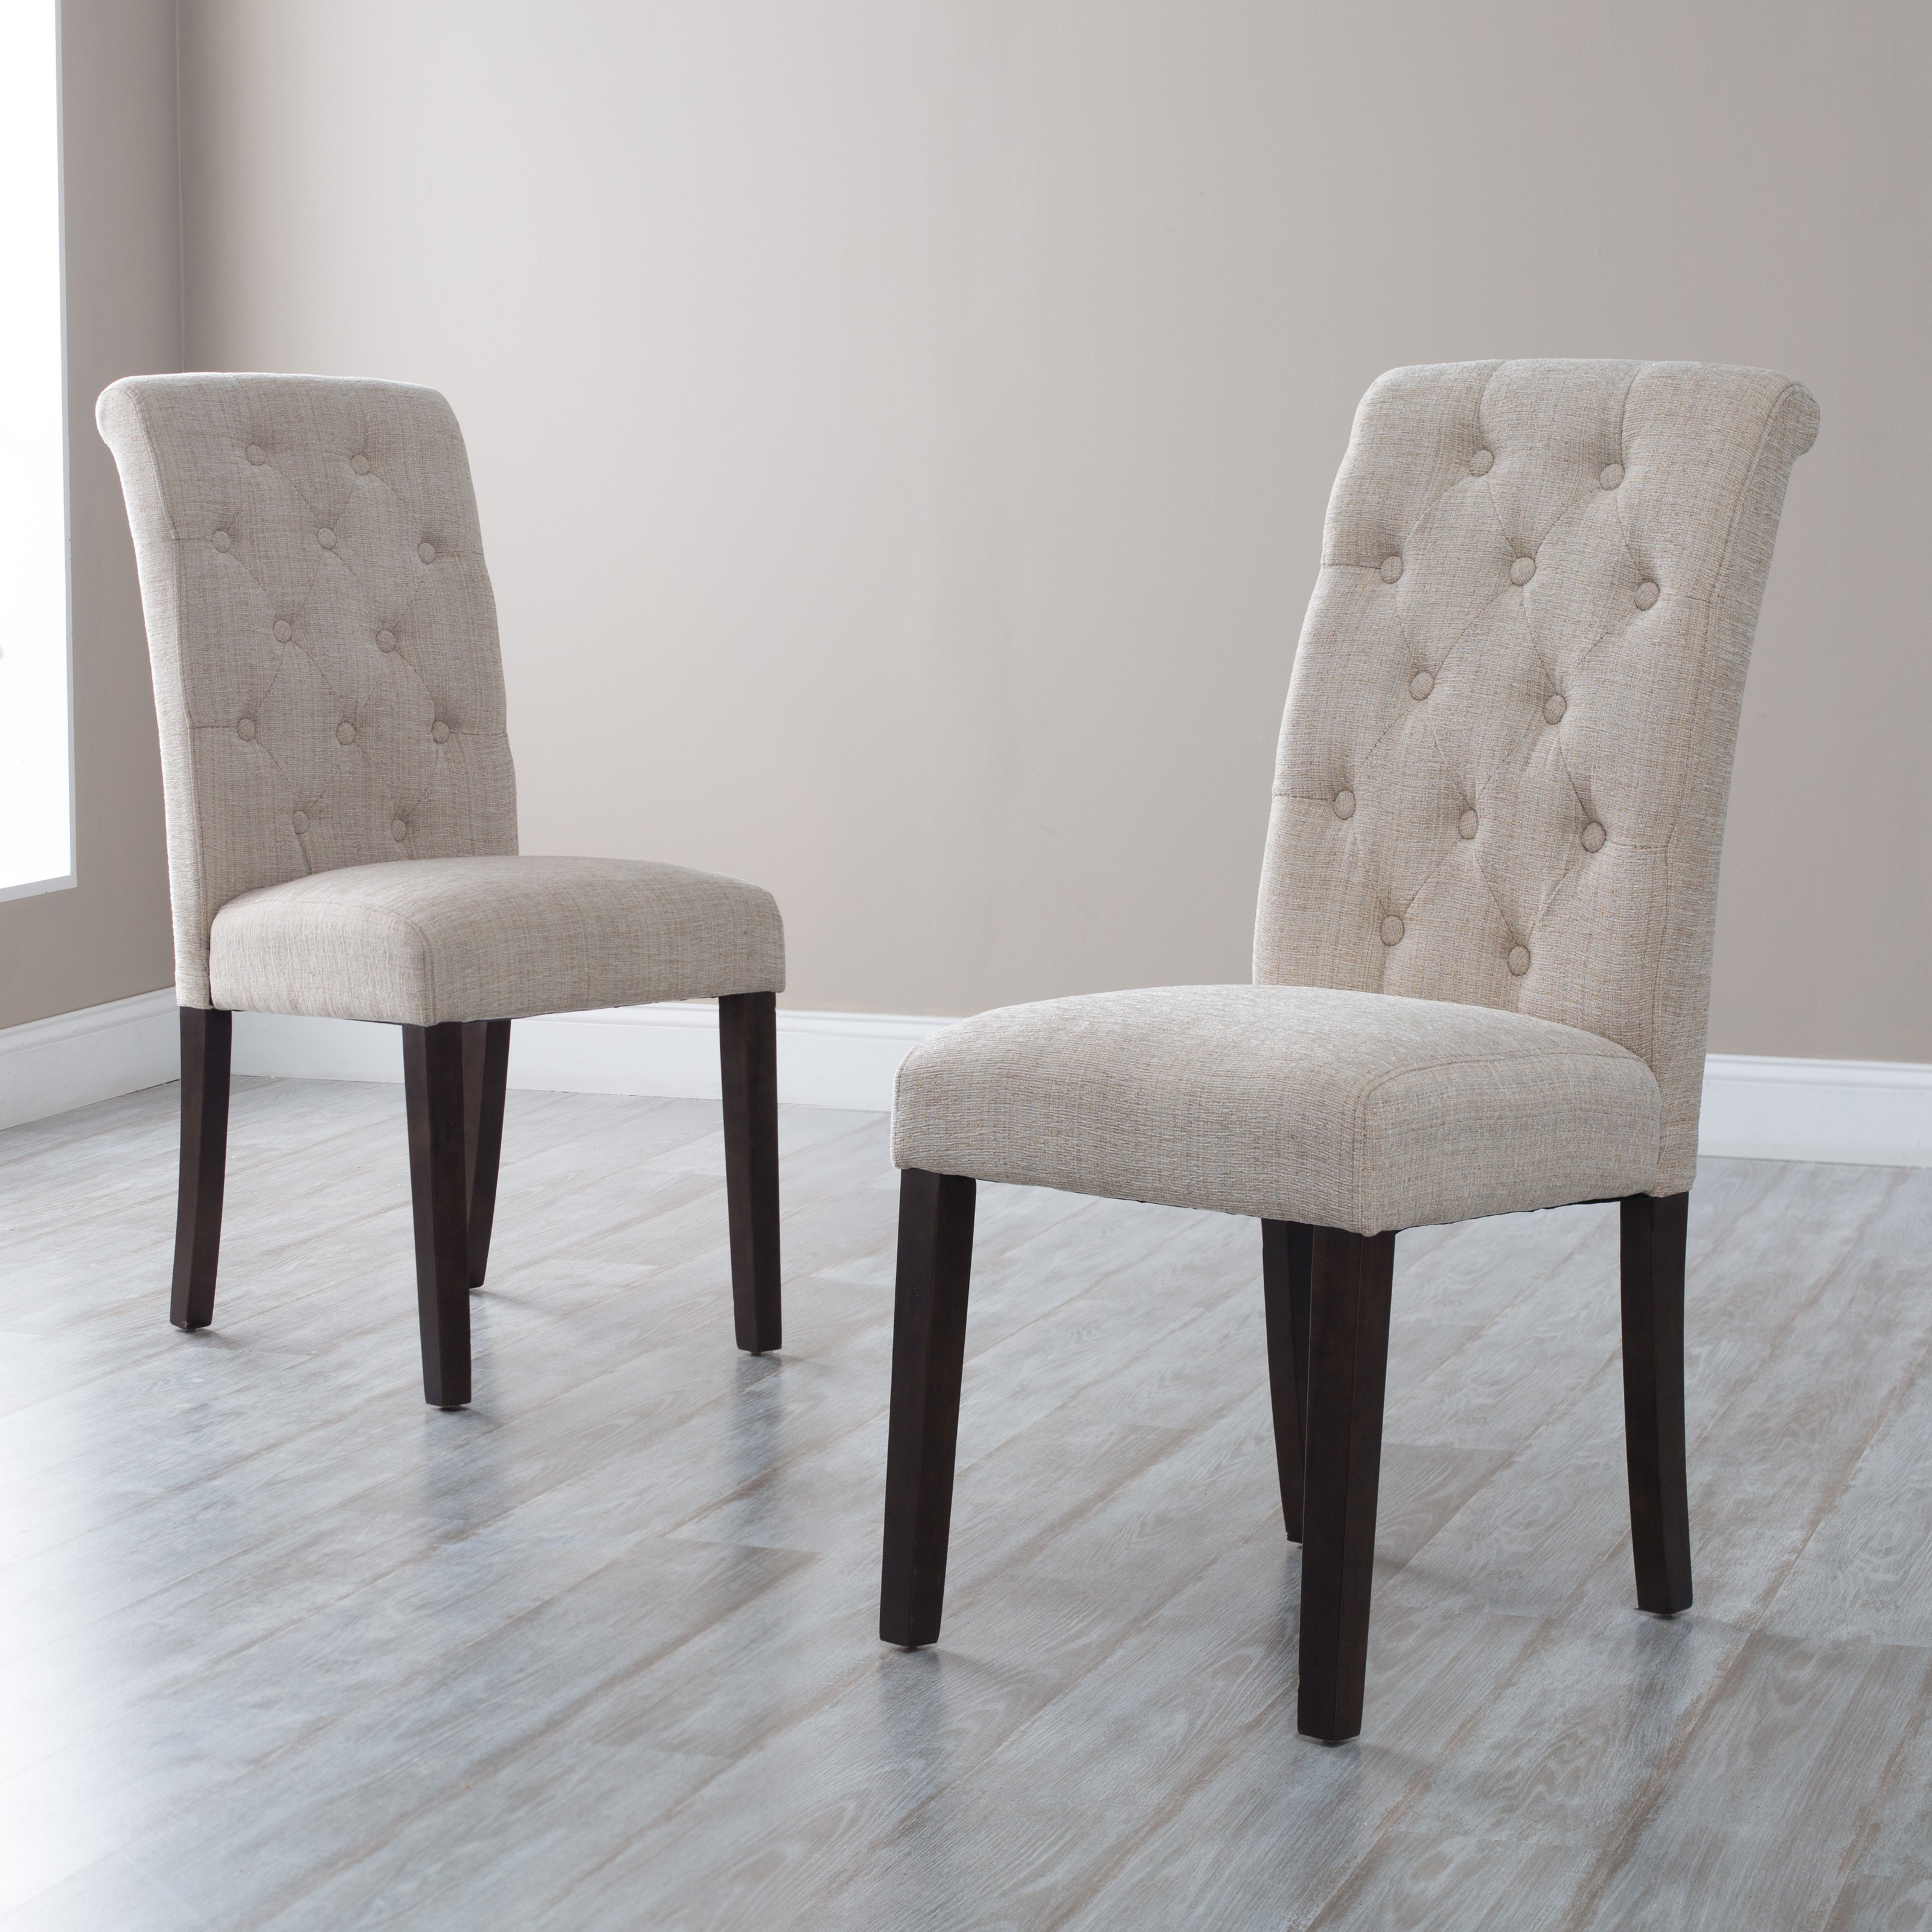 dining chairs morgana tufted parsons dining chair - set of 2 OVGRKVF